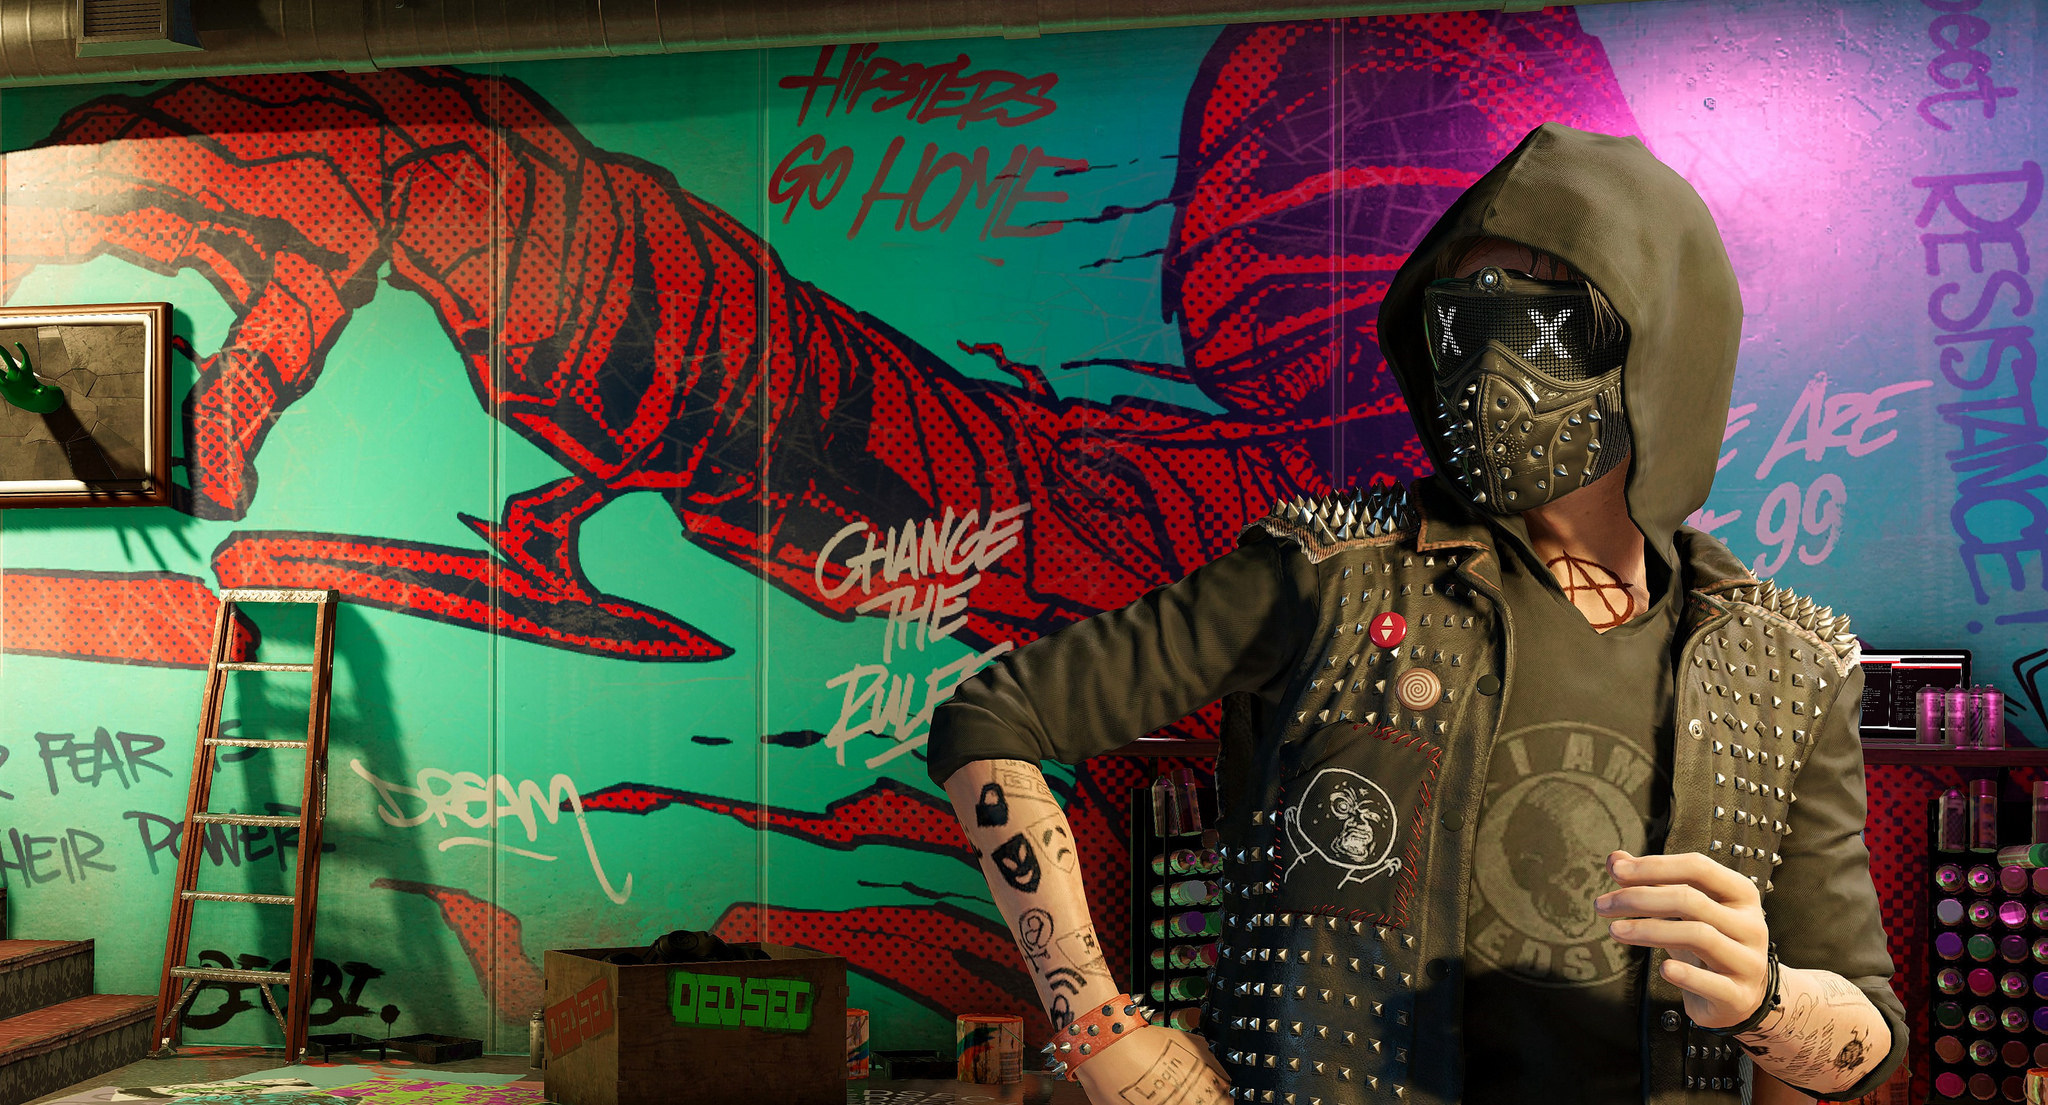 Watch Dogs 2 Hd 1080P, HD Games, 4k Wallpapers, Images